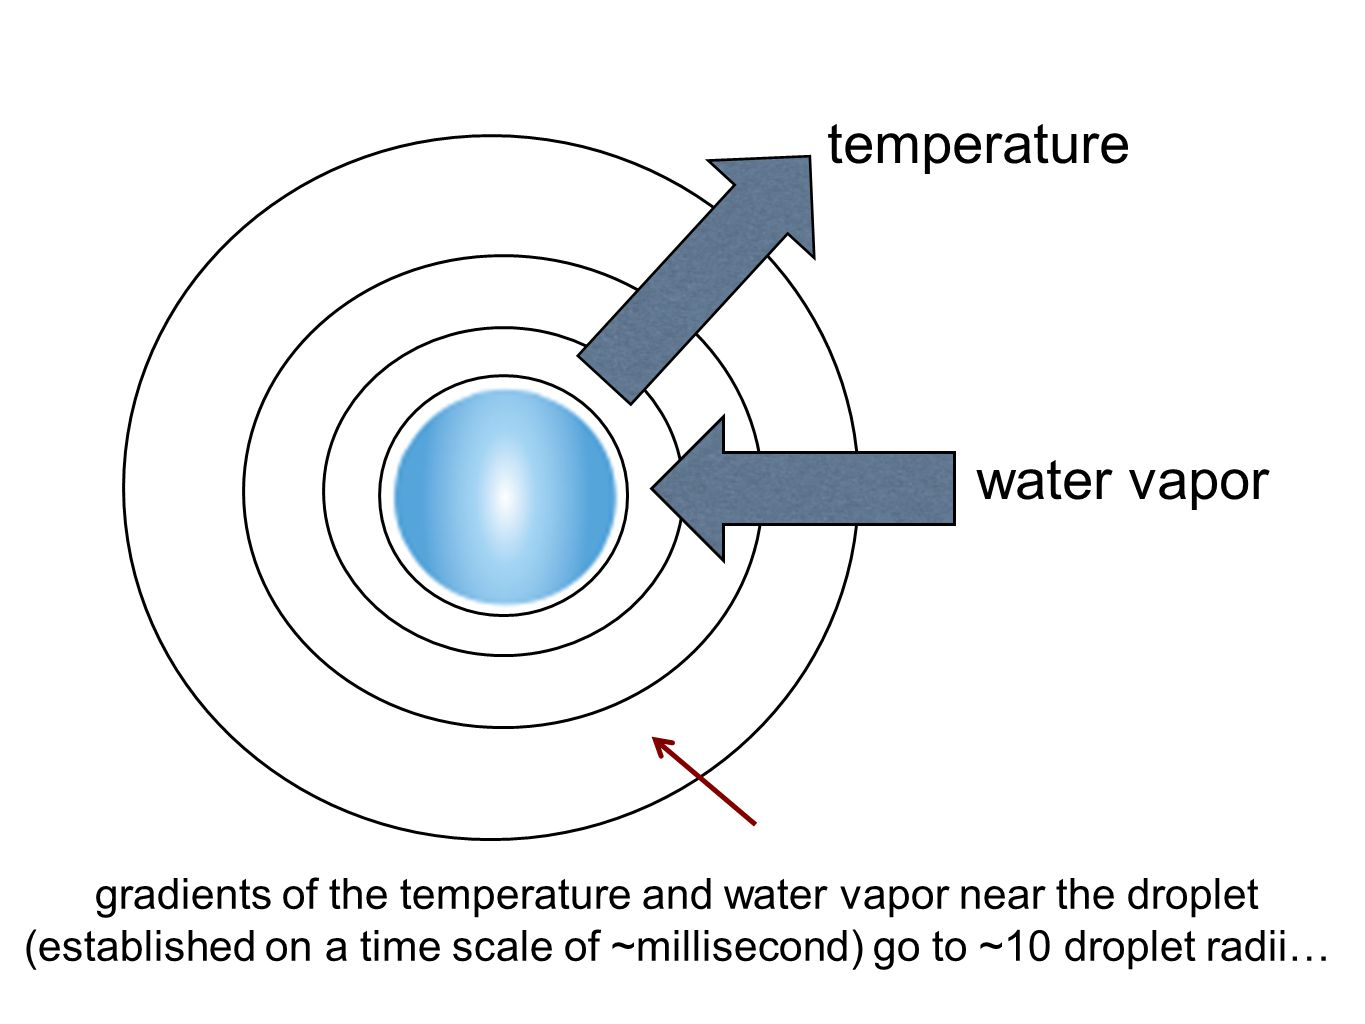 water vapor temperature gradients of the temperature and water vapor near the droplet (established on a time scale of ~millisecond) go to ~10 droplet radii…